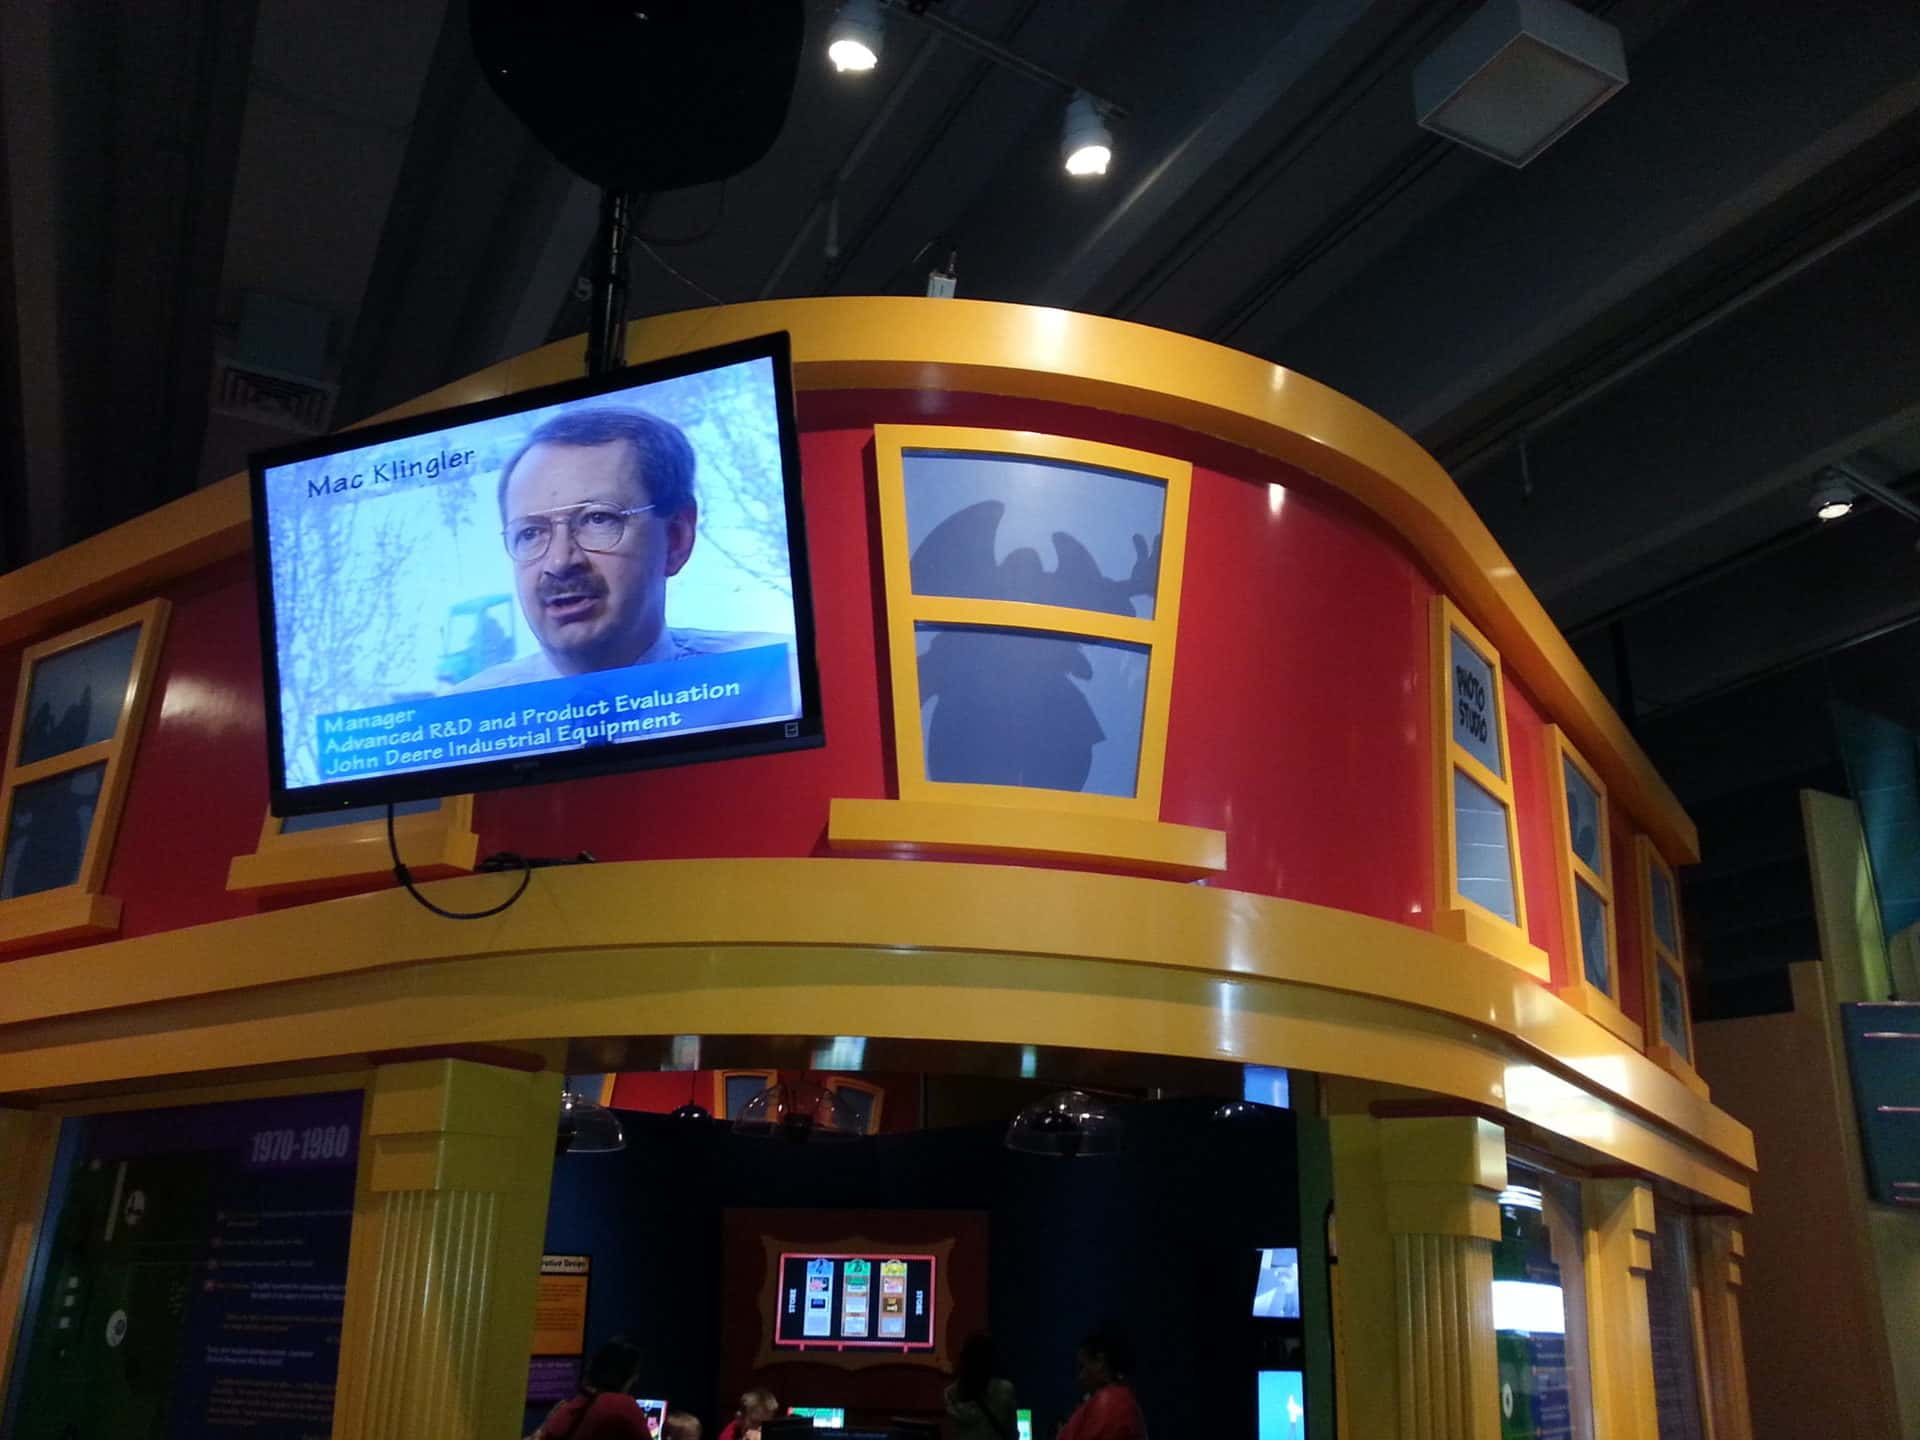 St Louis Science Center - Inside Cyberville